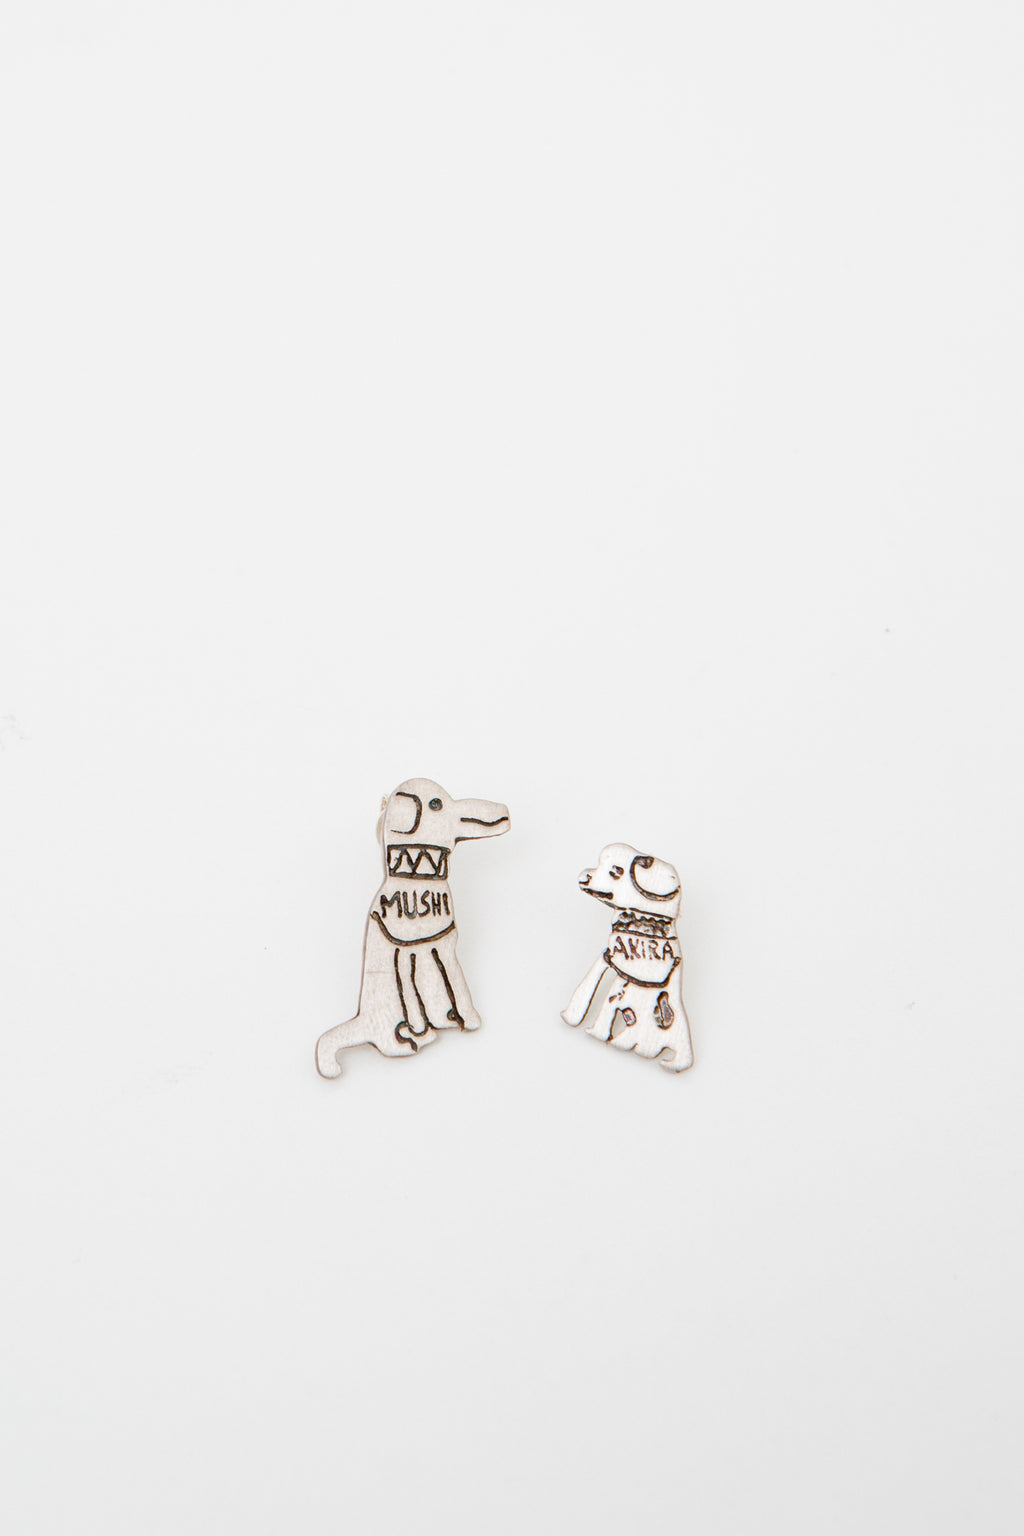 Earrings Akira & Mushi Silver